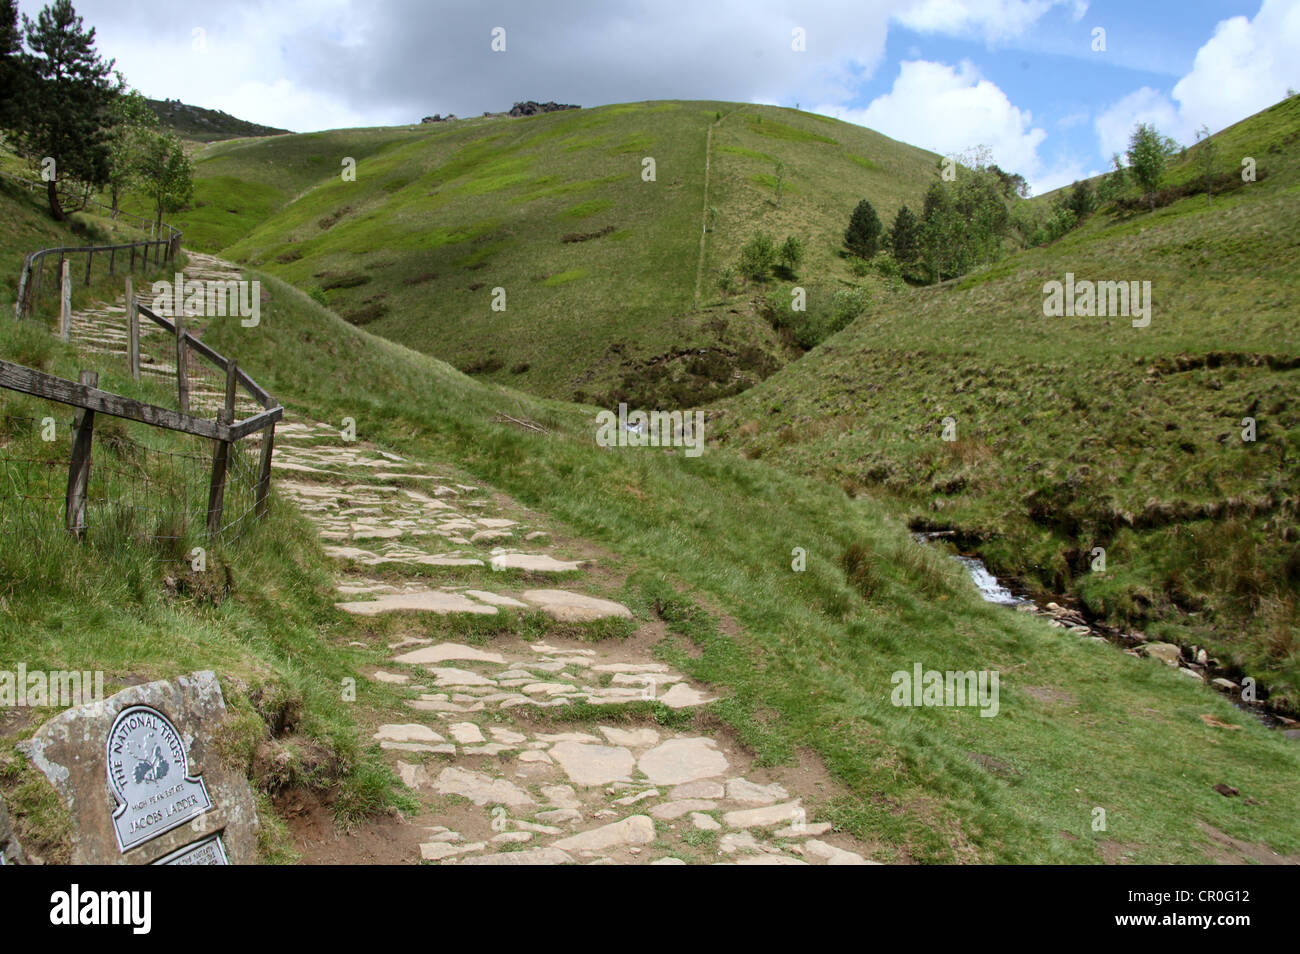 Jacobs Ladder Path to the Plateau of Kinder Scout - Stock Image